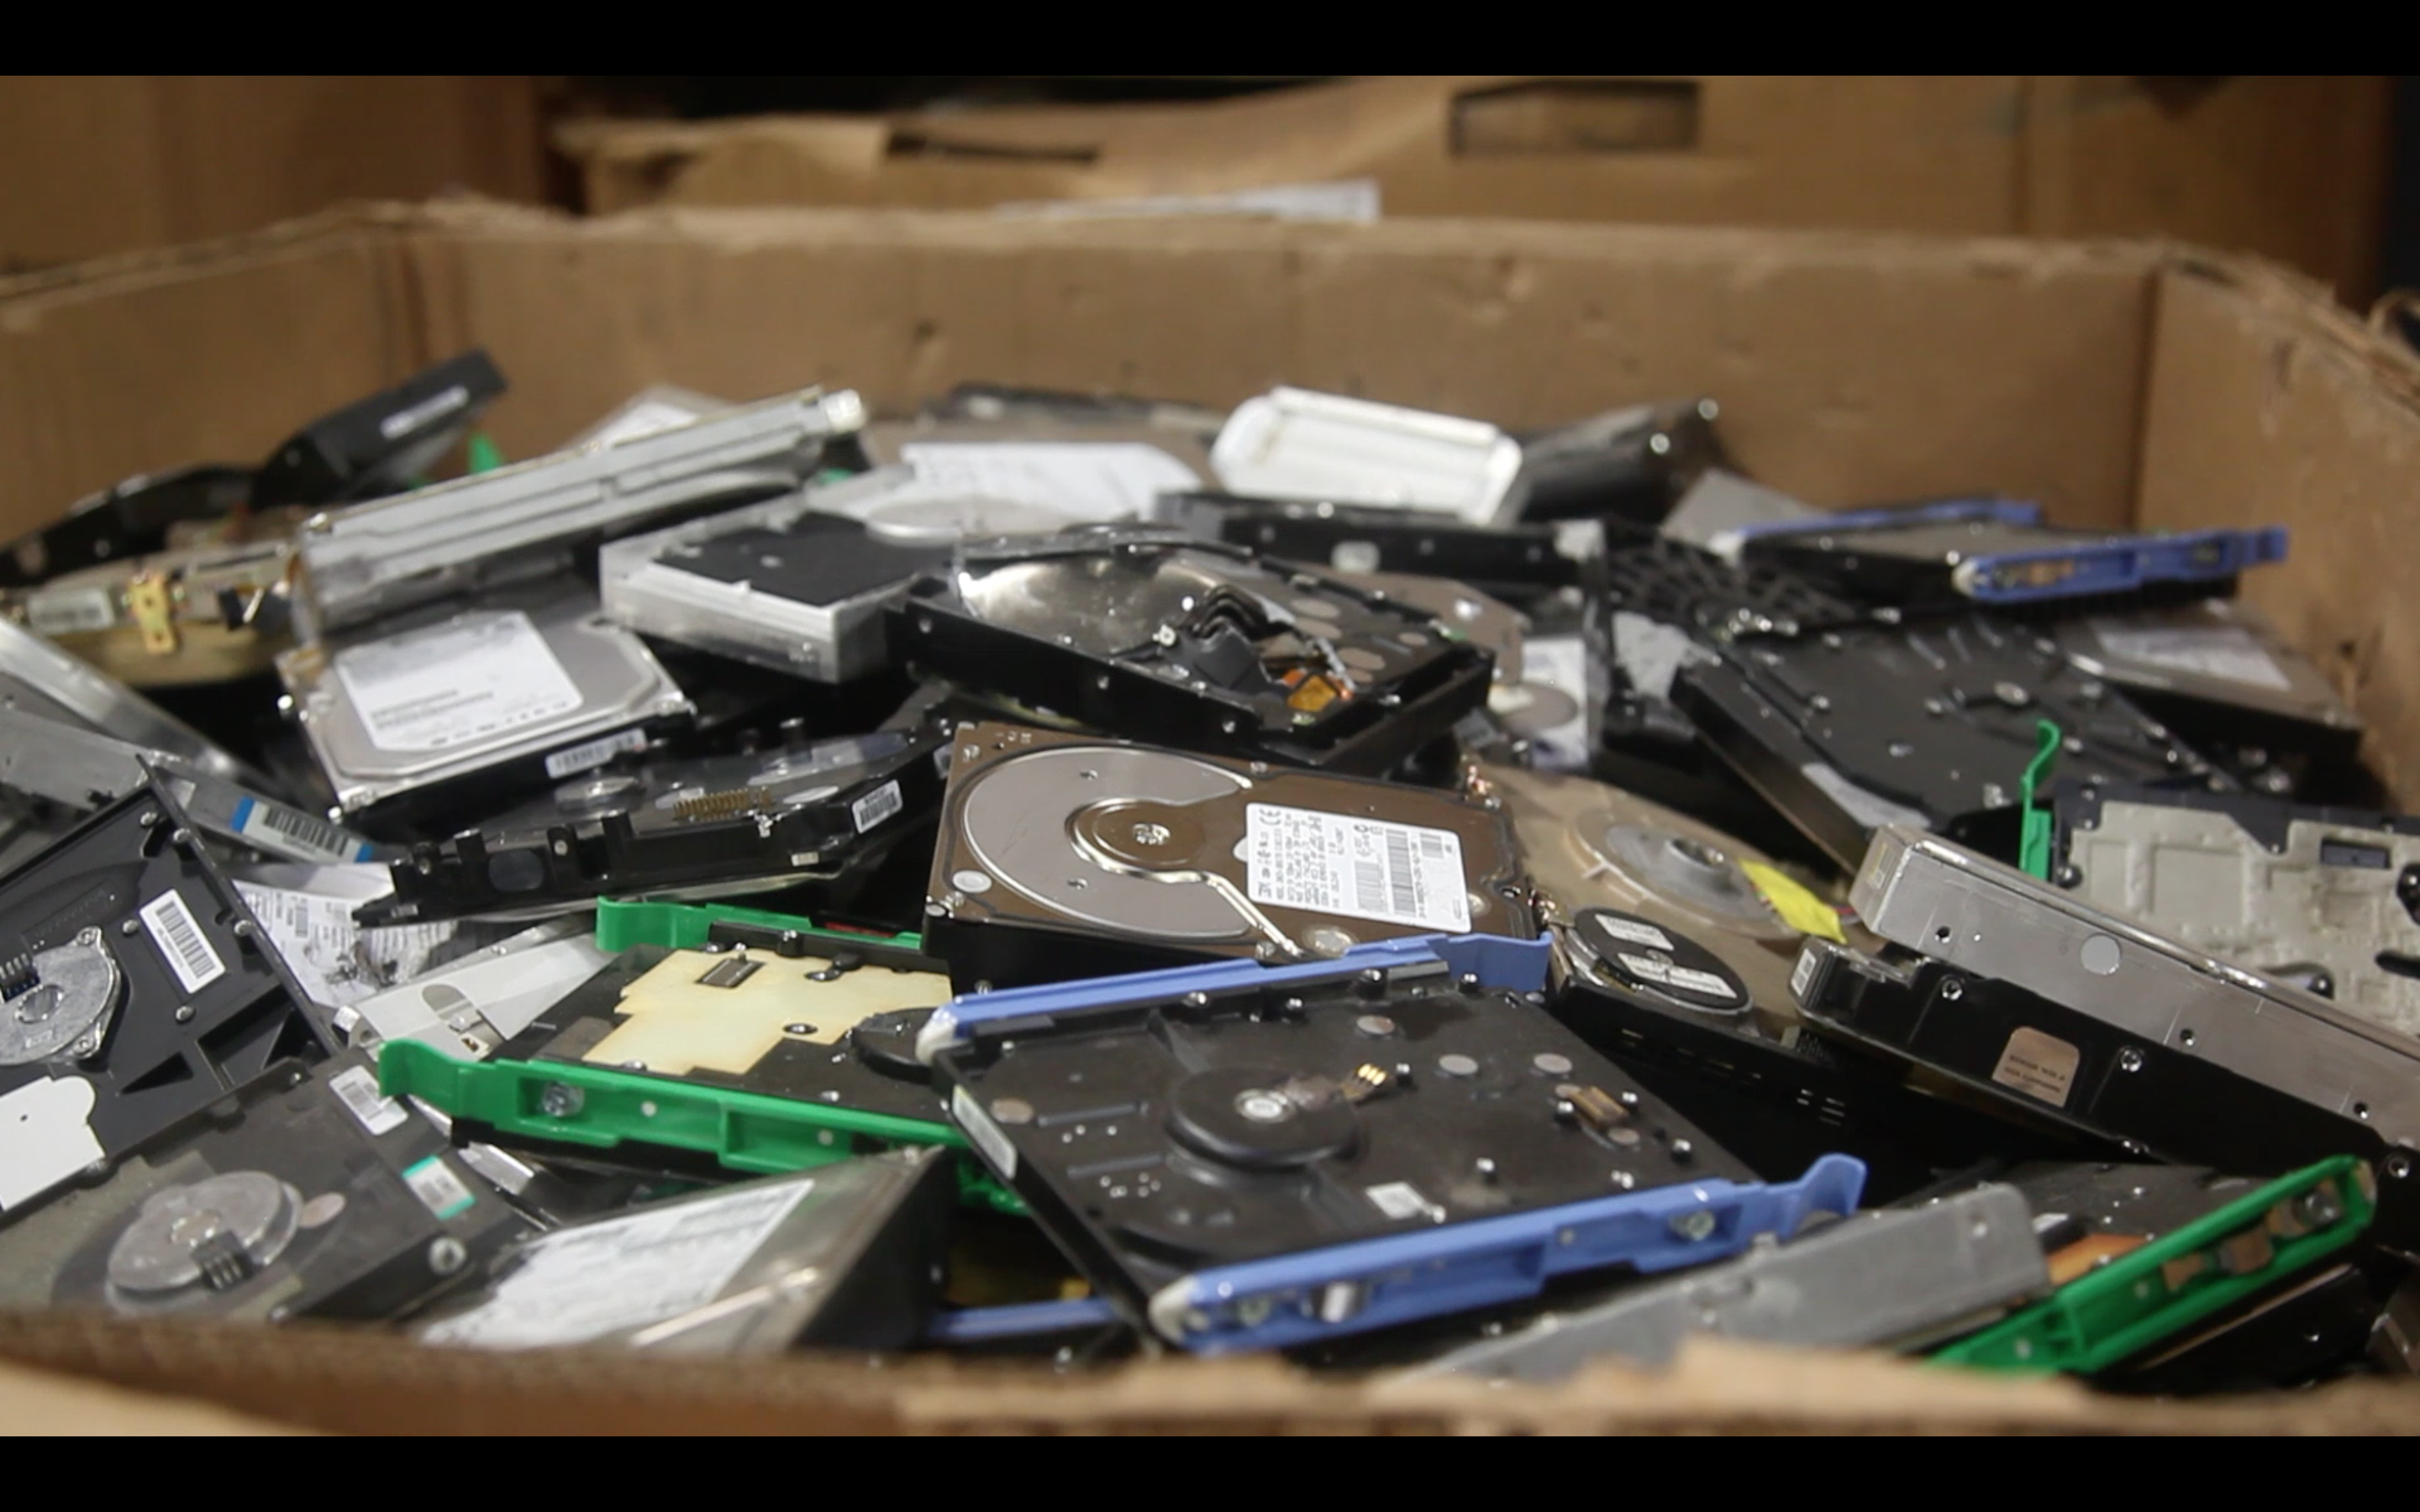 Less Than 3% of Recycled Computing Devices Properly Wiped